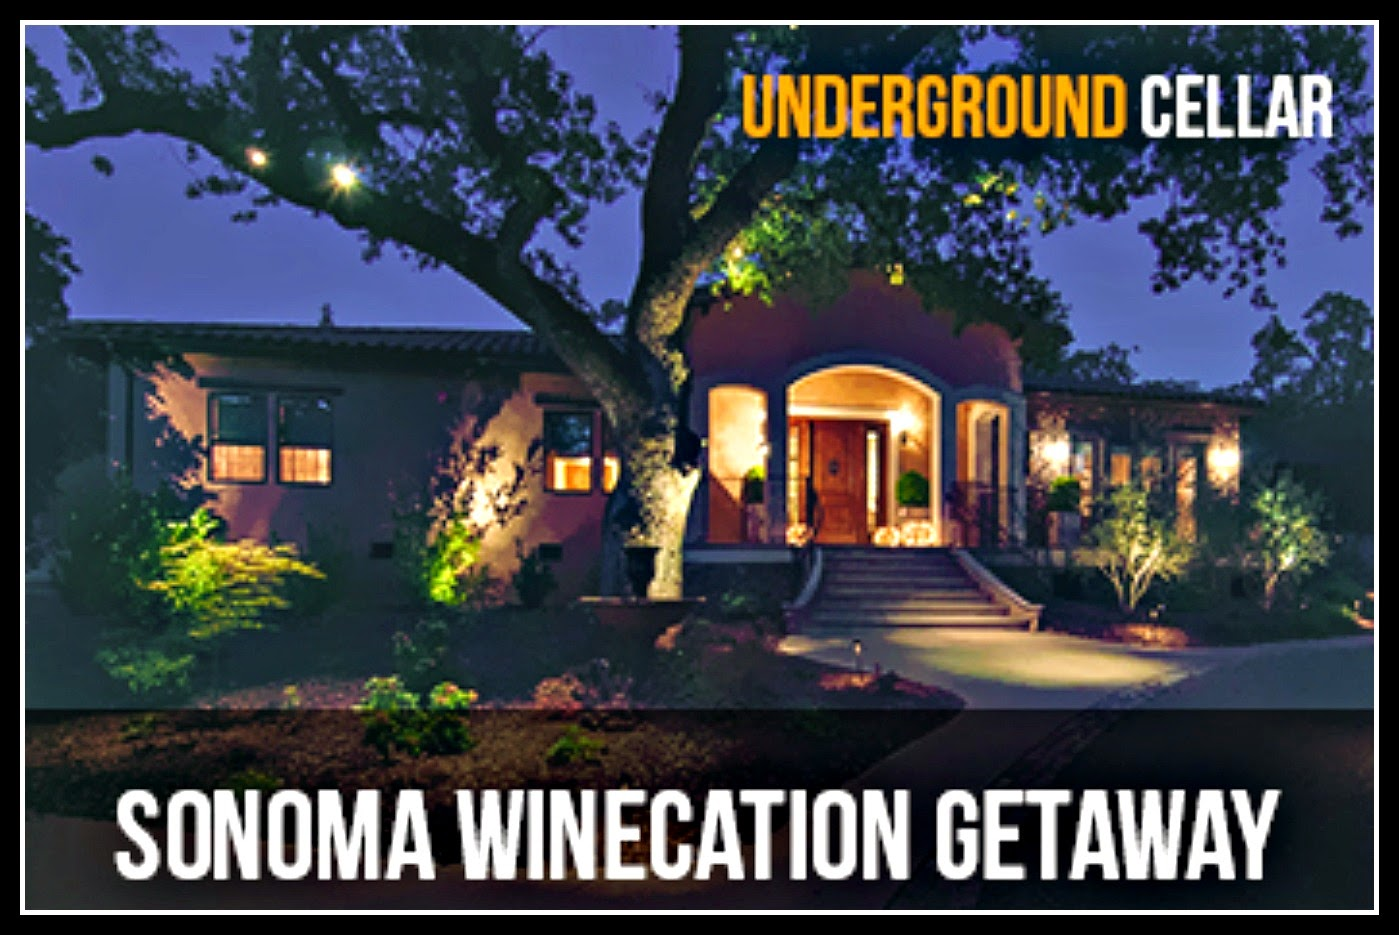 Sonoma Winecation Giveaway